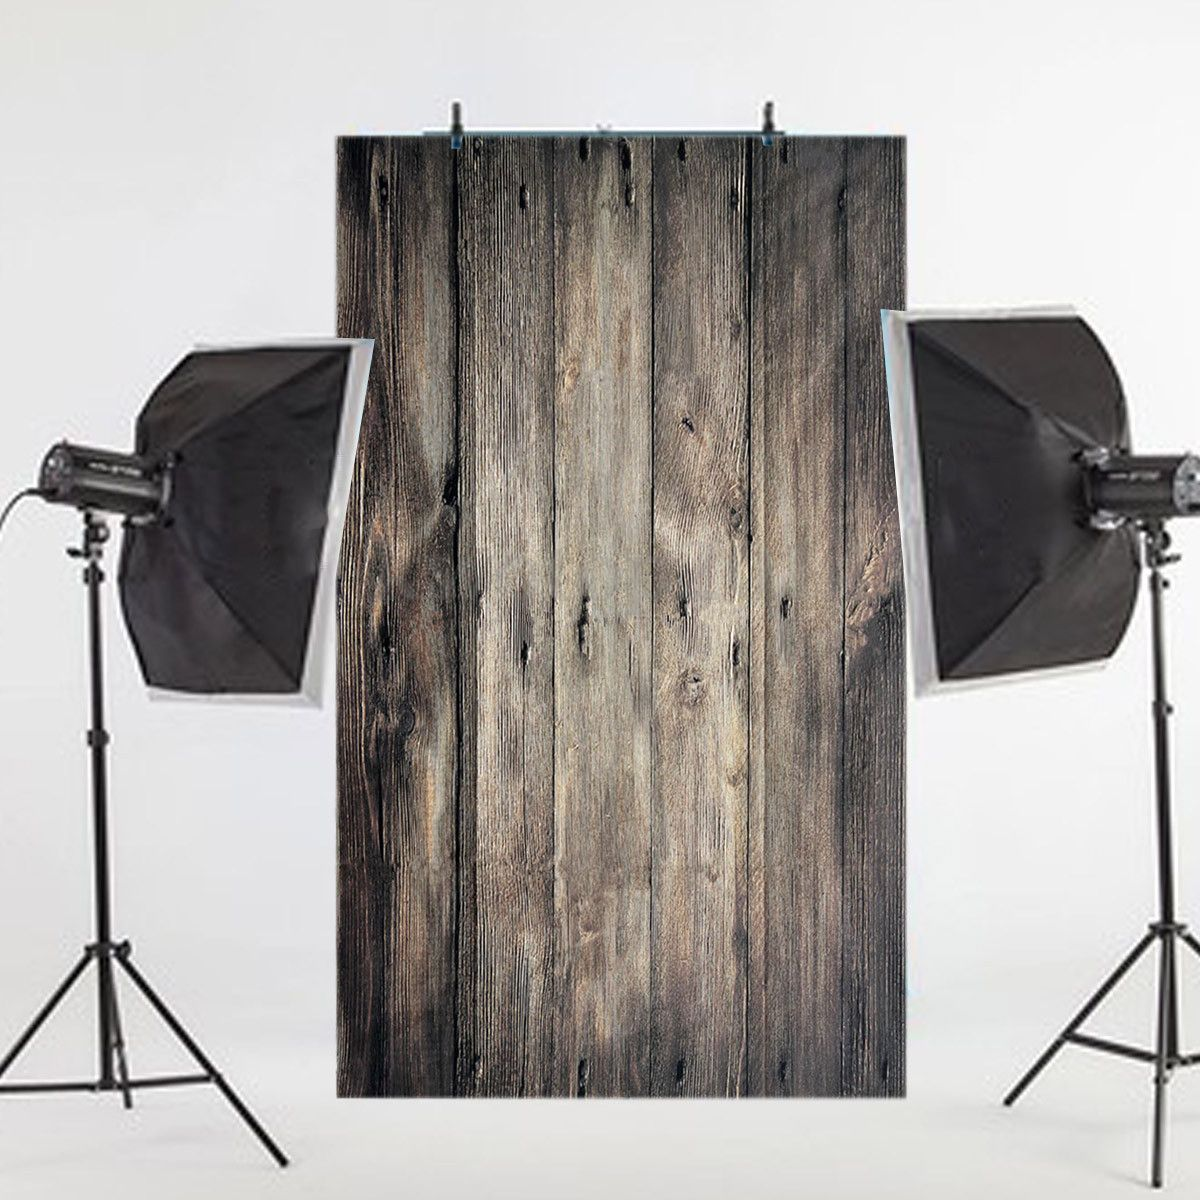 New 3x5FT Vintage Photography Backdrops Wood Vintage Photography Backdrop Backgrounds Studio Wood Background Fotografia сборная модель revell броневик atf dingo 2 ge a2 patsi